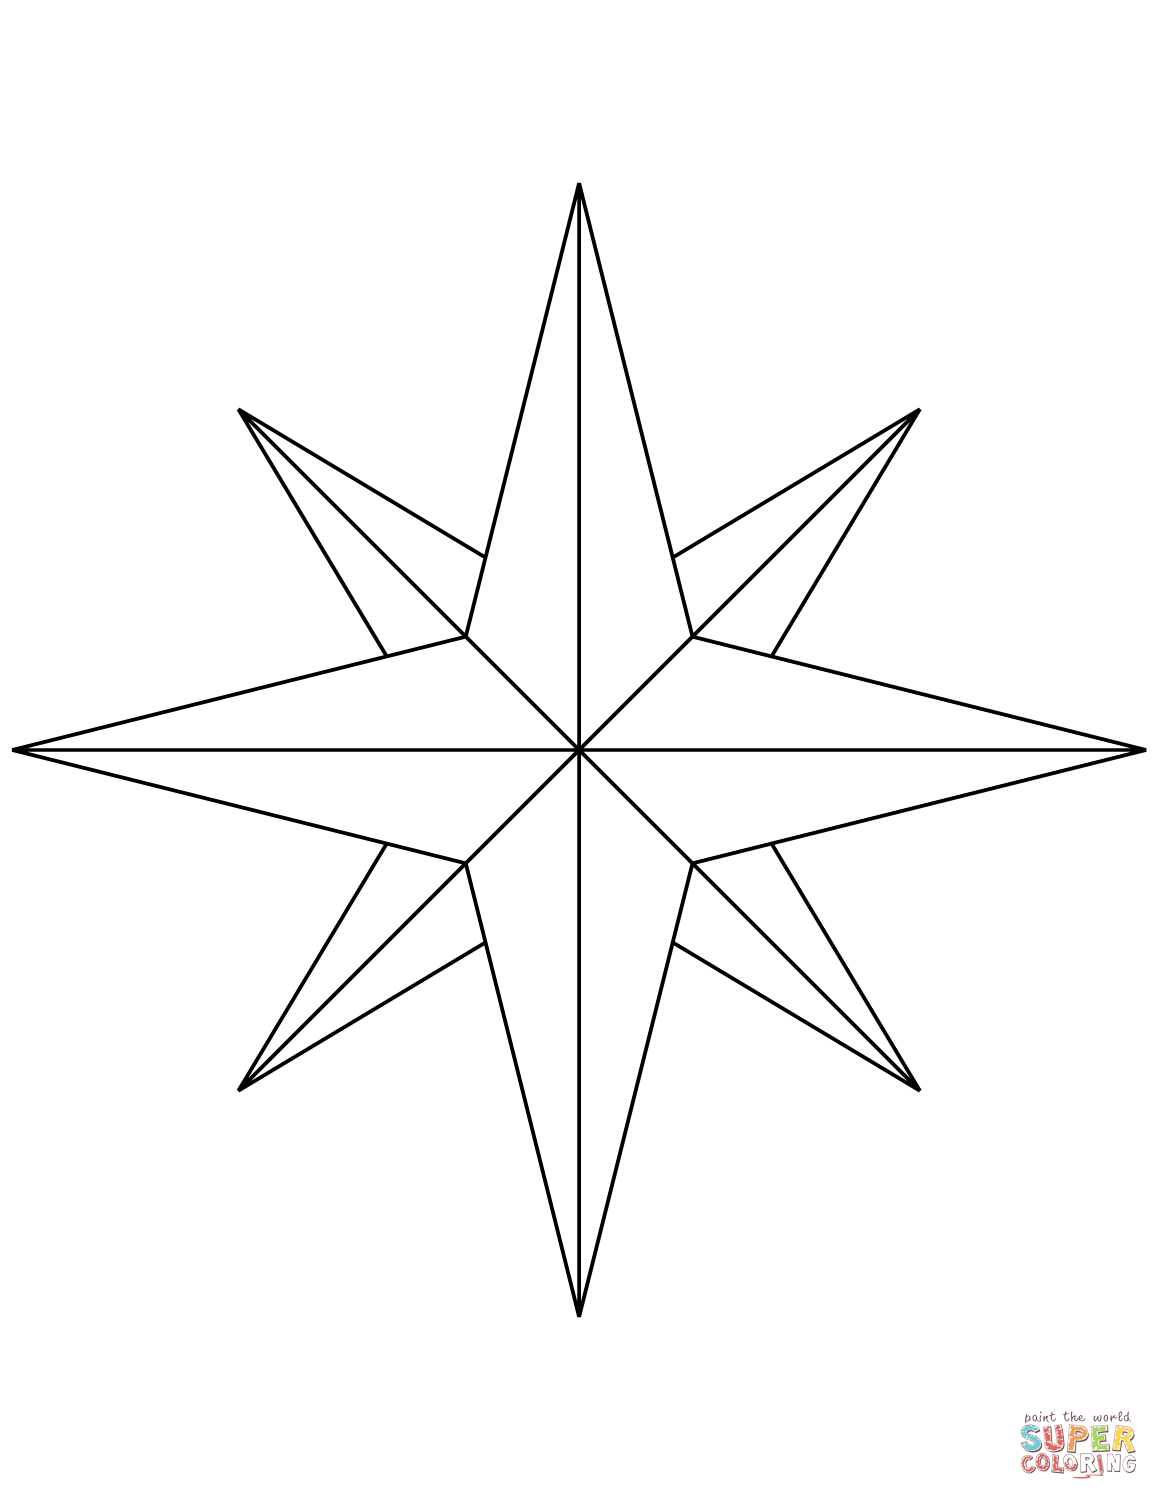 8 Point Compass Rose Coloring Page